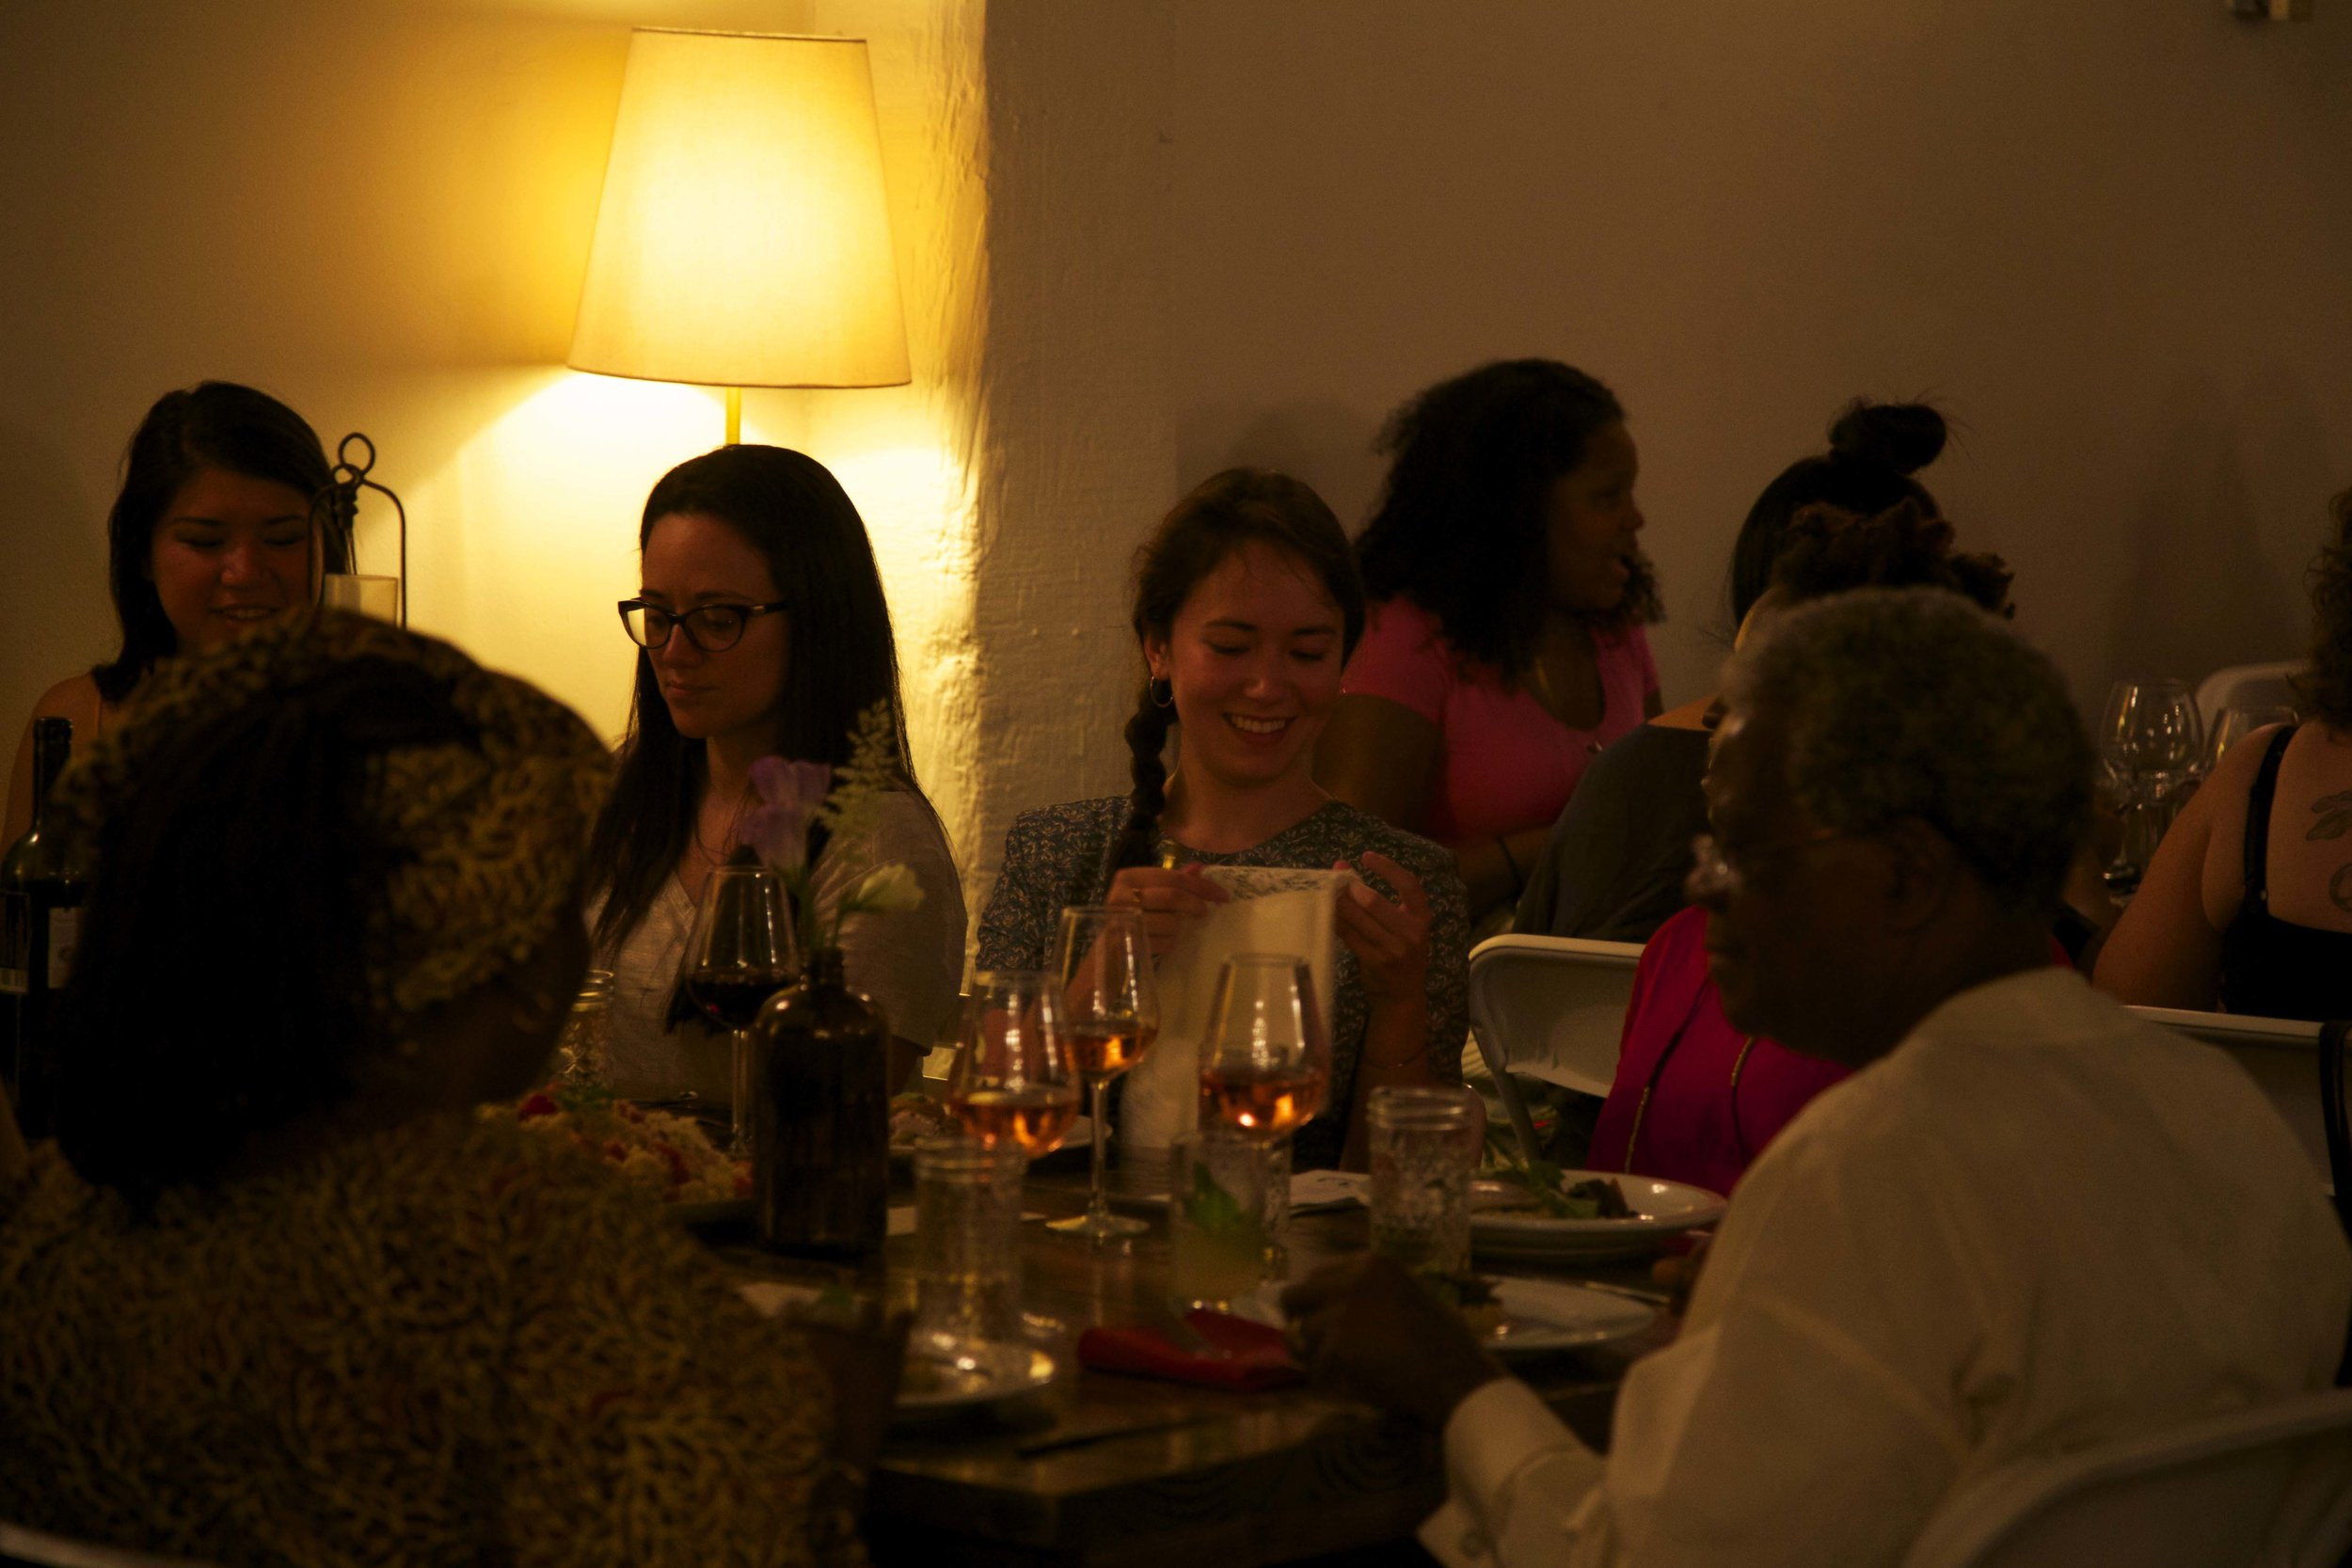 Yewande_Komolafe-Dinner_Guests-My_Immigrant_Food_Is-Photo_by_Rachael_Bongiorno.jpg